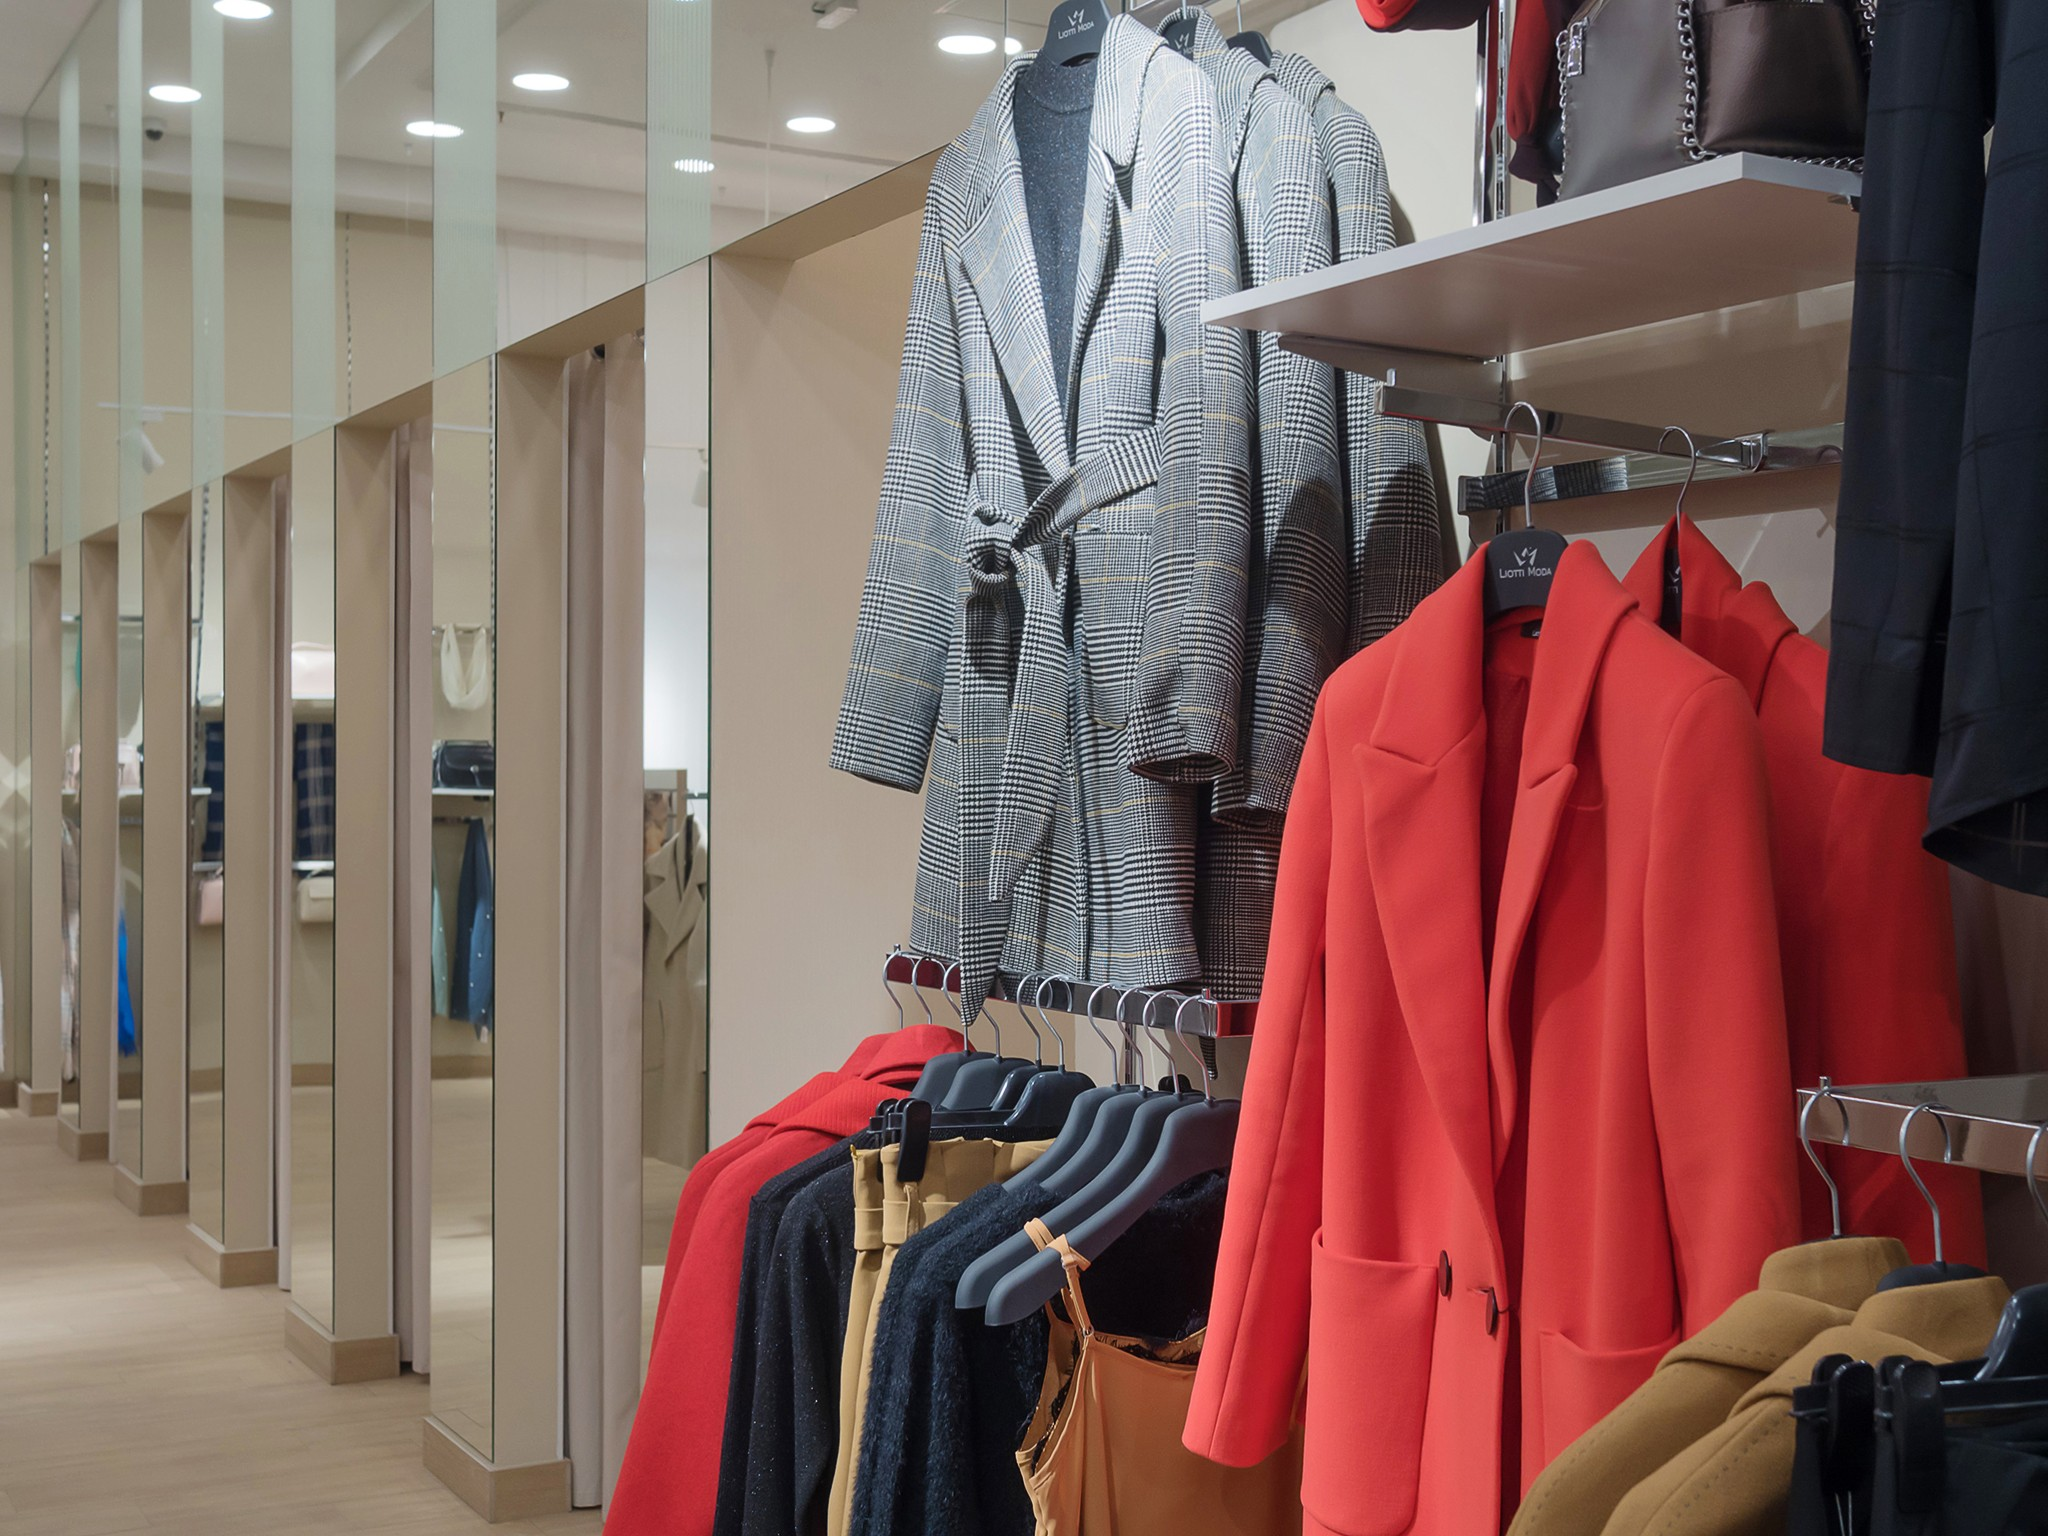 nterior of a clothing boutique. interior photography for the store by a professional photographer Moscow